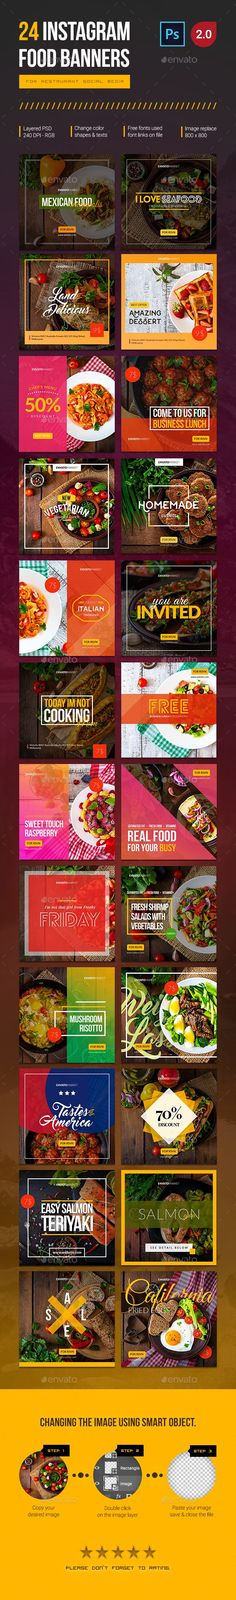 40 Instagram Food Banners